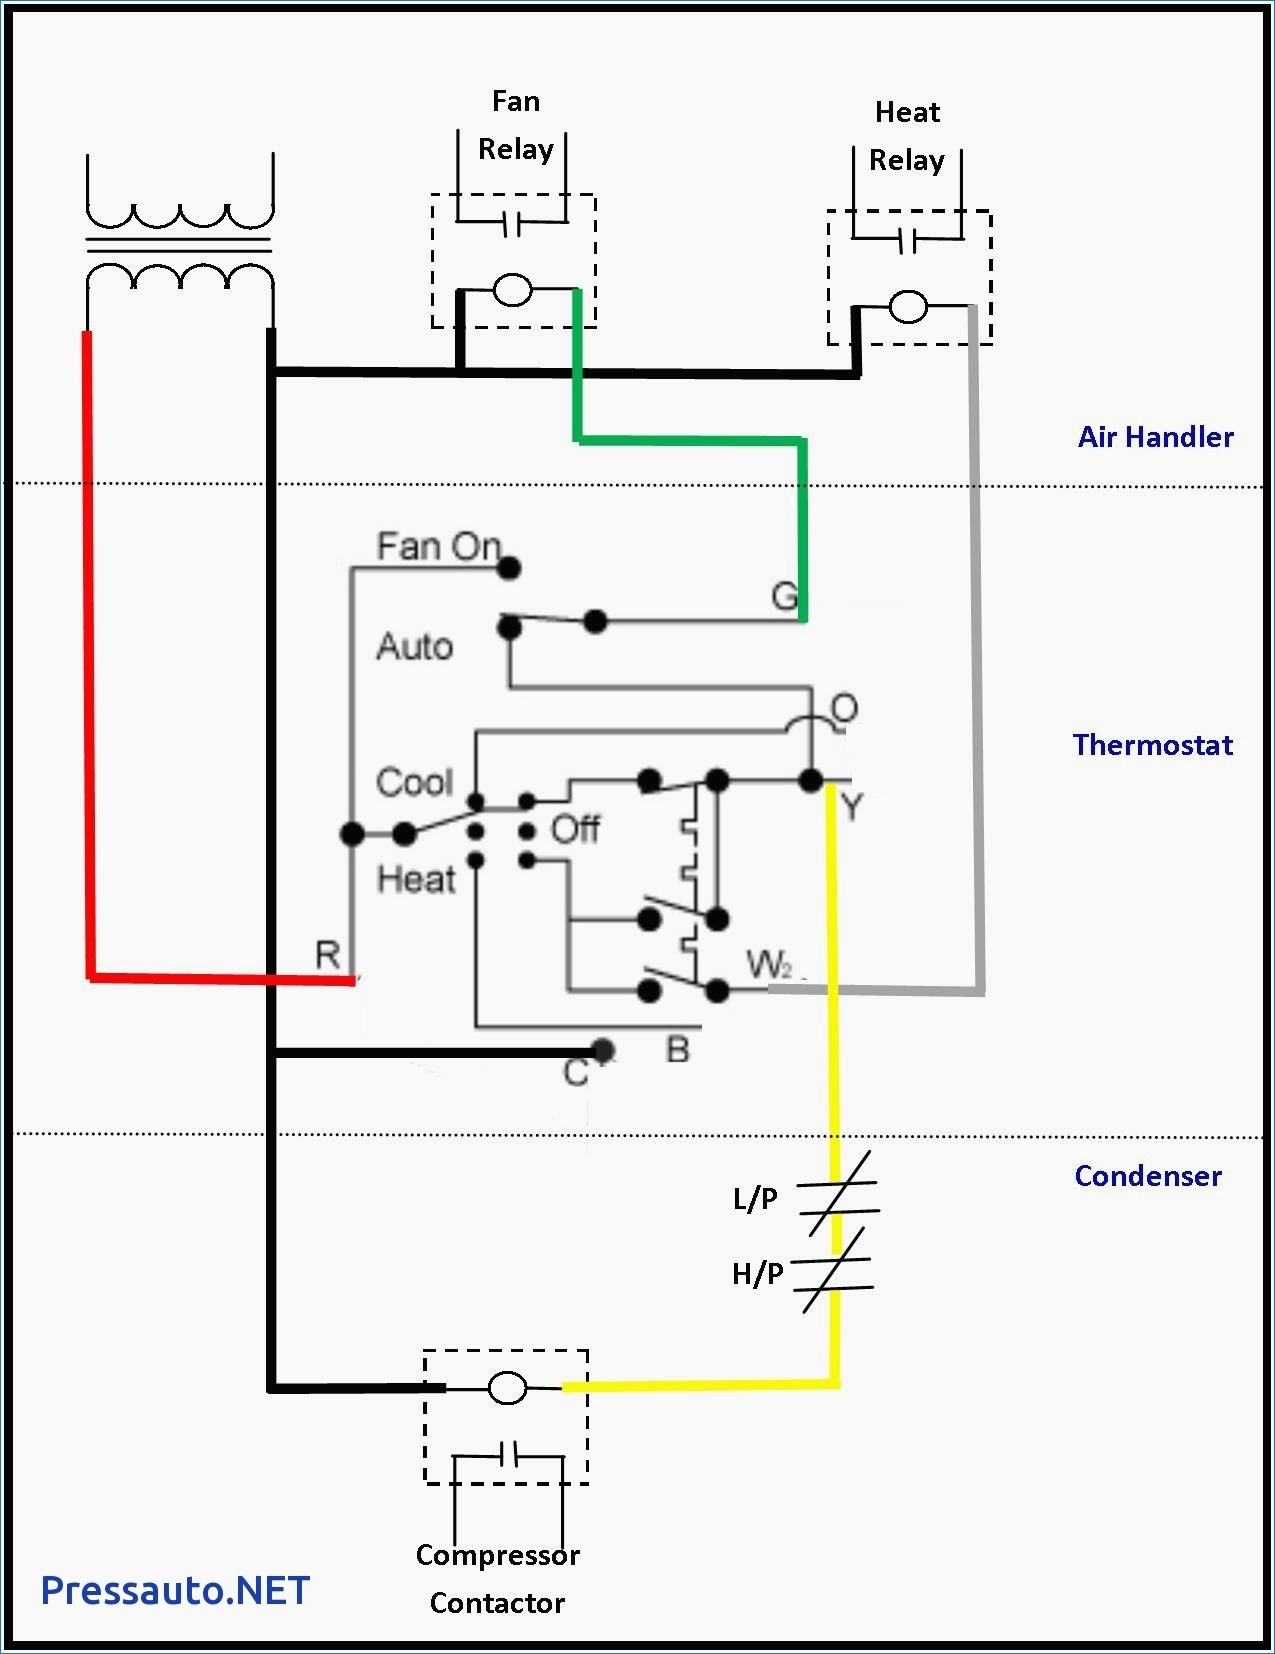 contactor wiring diagram ac unit Download-Central Ac Unit Diagram Wiring Copeland pressor Hvac Contactor Adorable Goodman Condensing 11-d